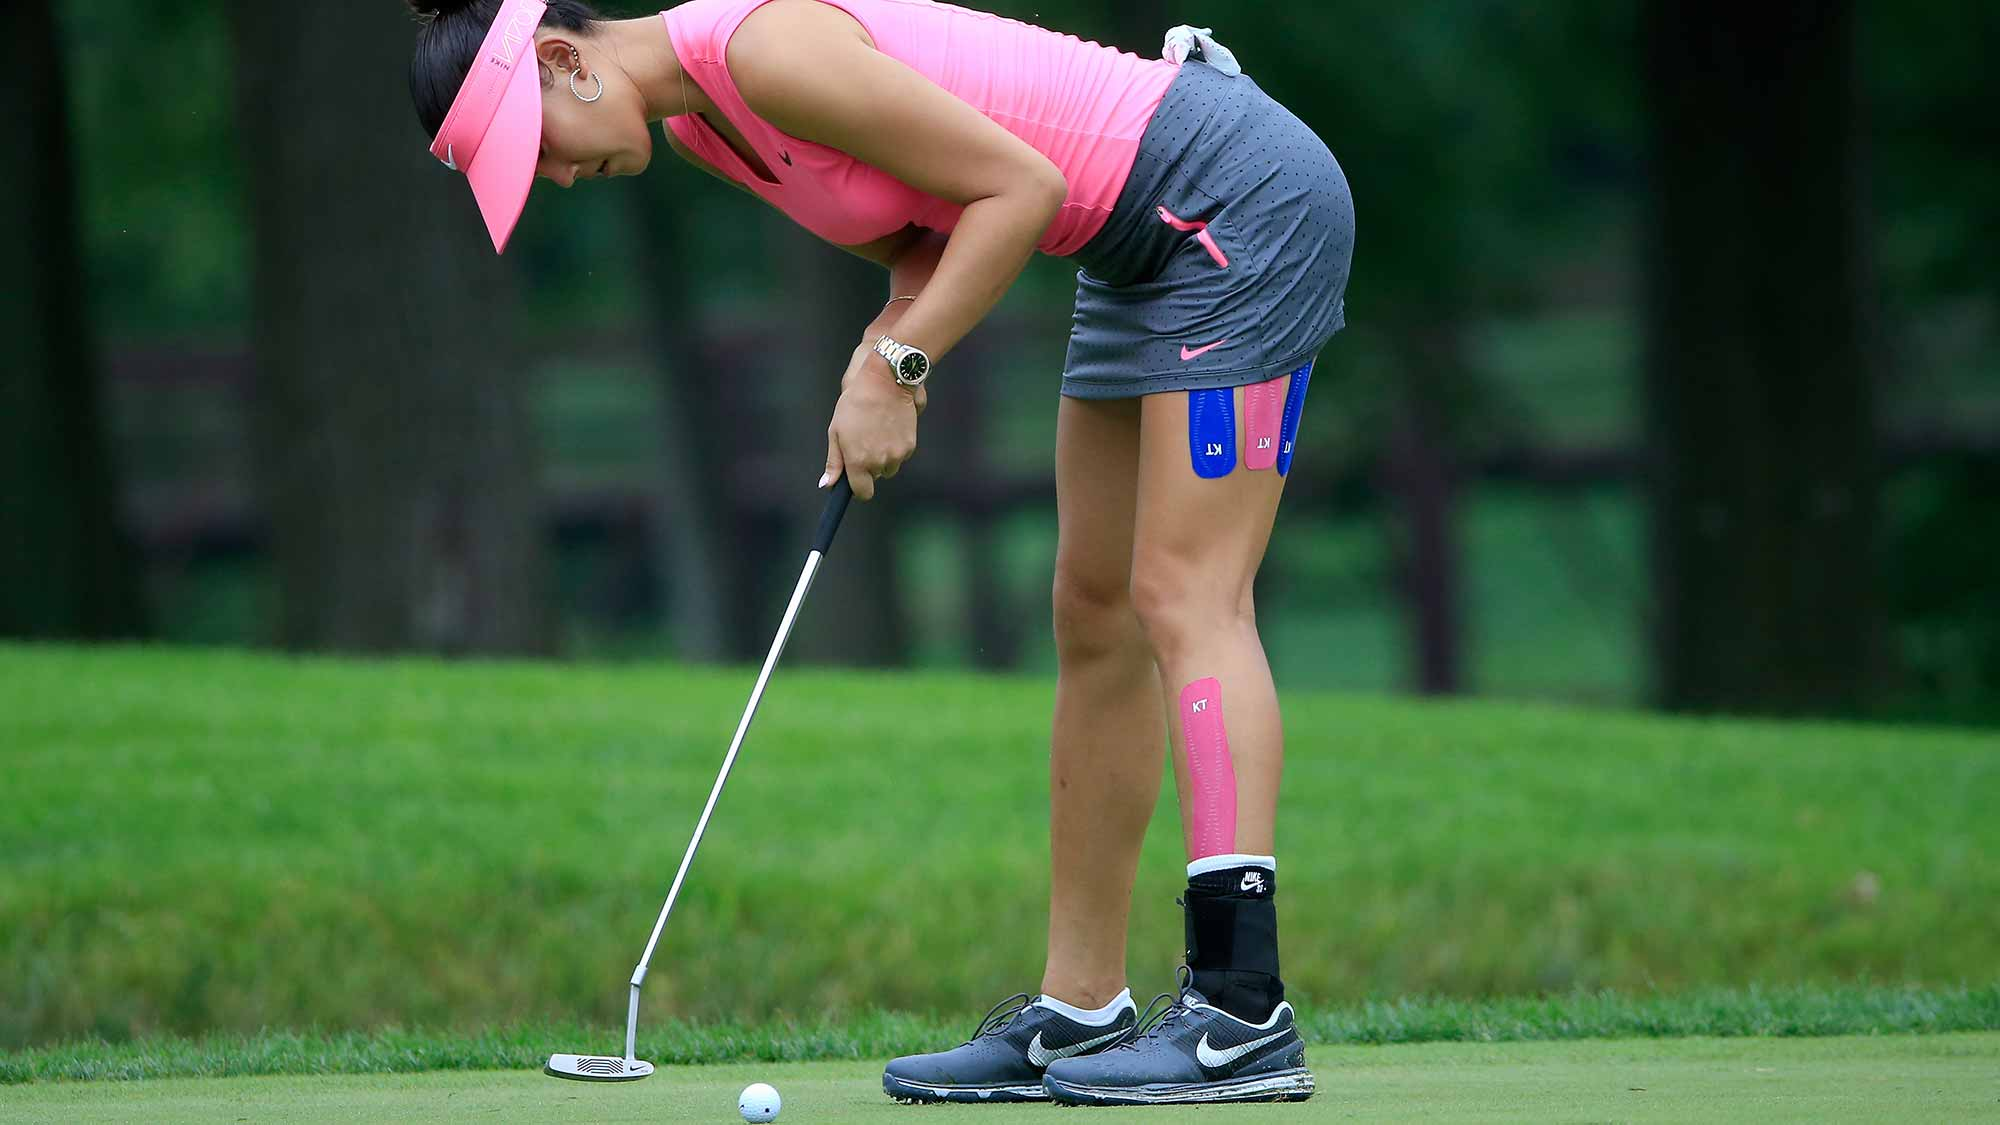 Michelle Wie of the United States plays a shot on the third hole during the first round of the U.S. Women's Open at Lancaster Country Club